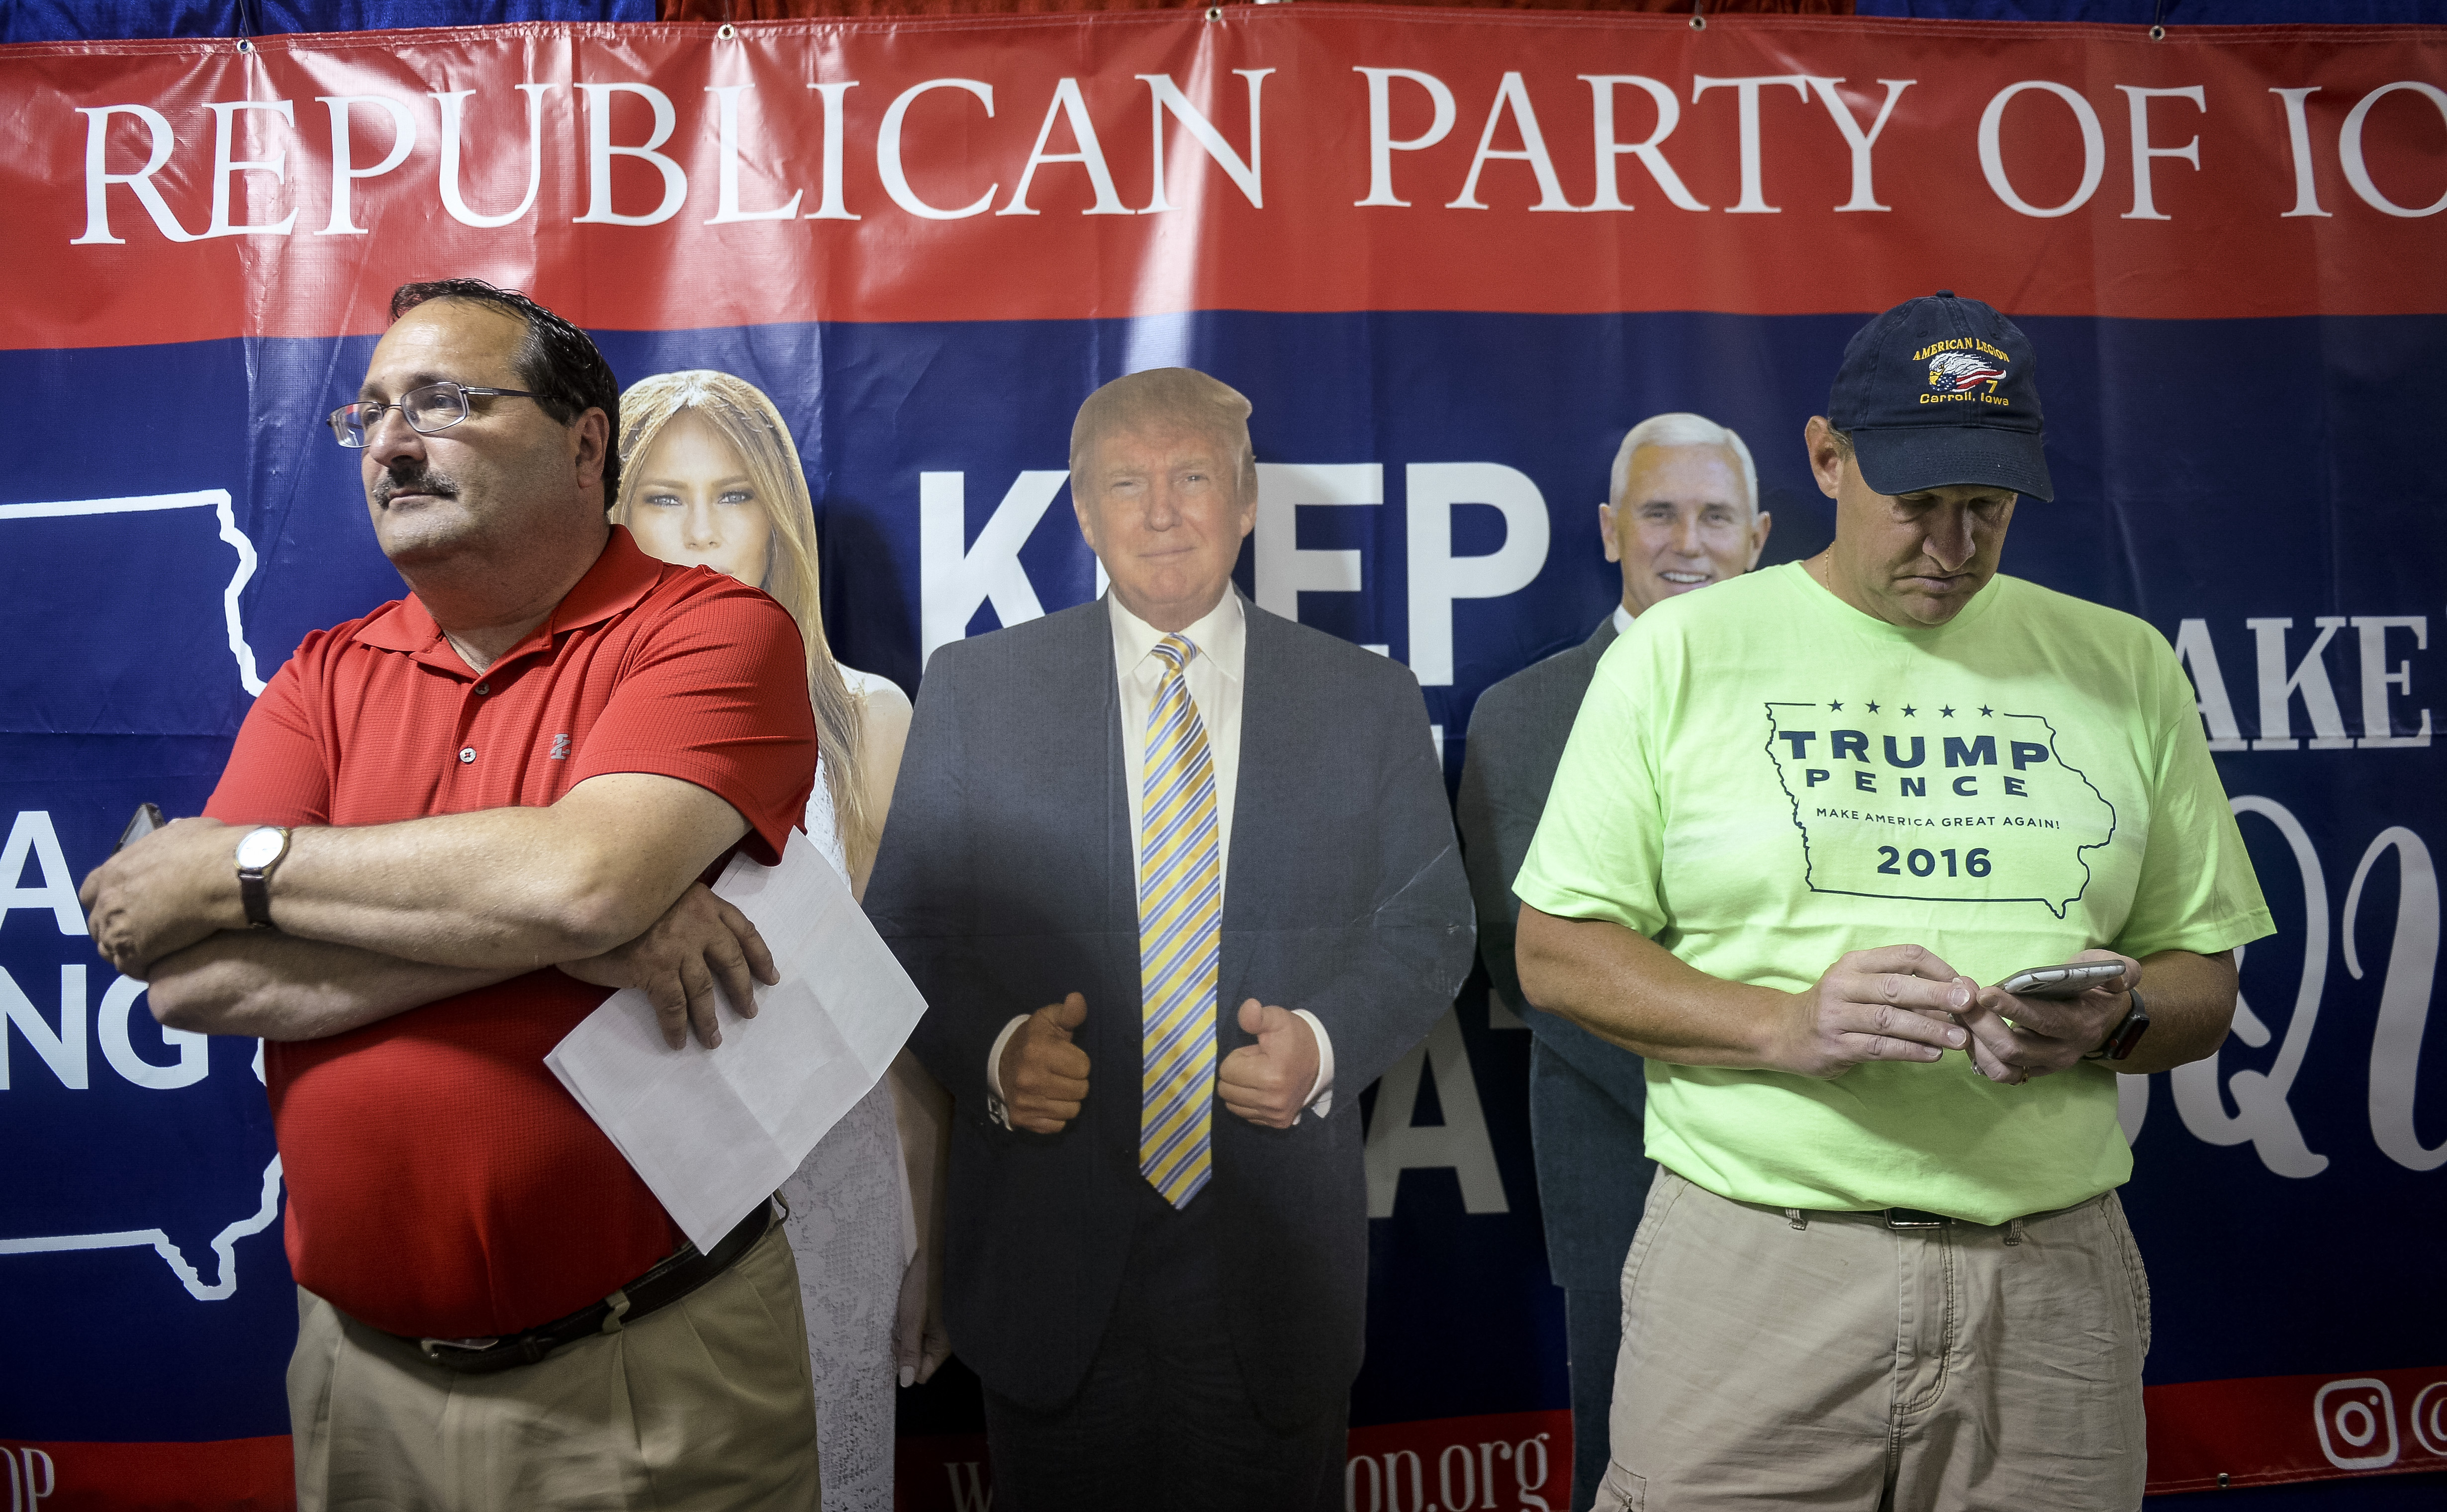 UNITED STATES - AUGUST 10: Iowa GOP Chairman Jeff Kaufmann, left, stands at the GOP booth inside the Varied Industries building at the Iowa State Fair on Saturday August 10, 2019. (Photo by Caroline Brehman/CQ Roll Call)